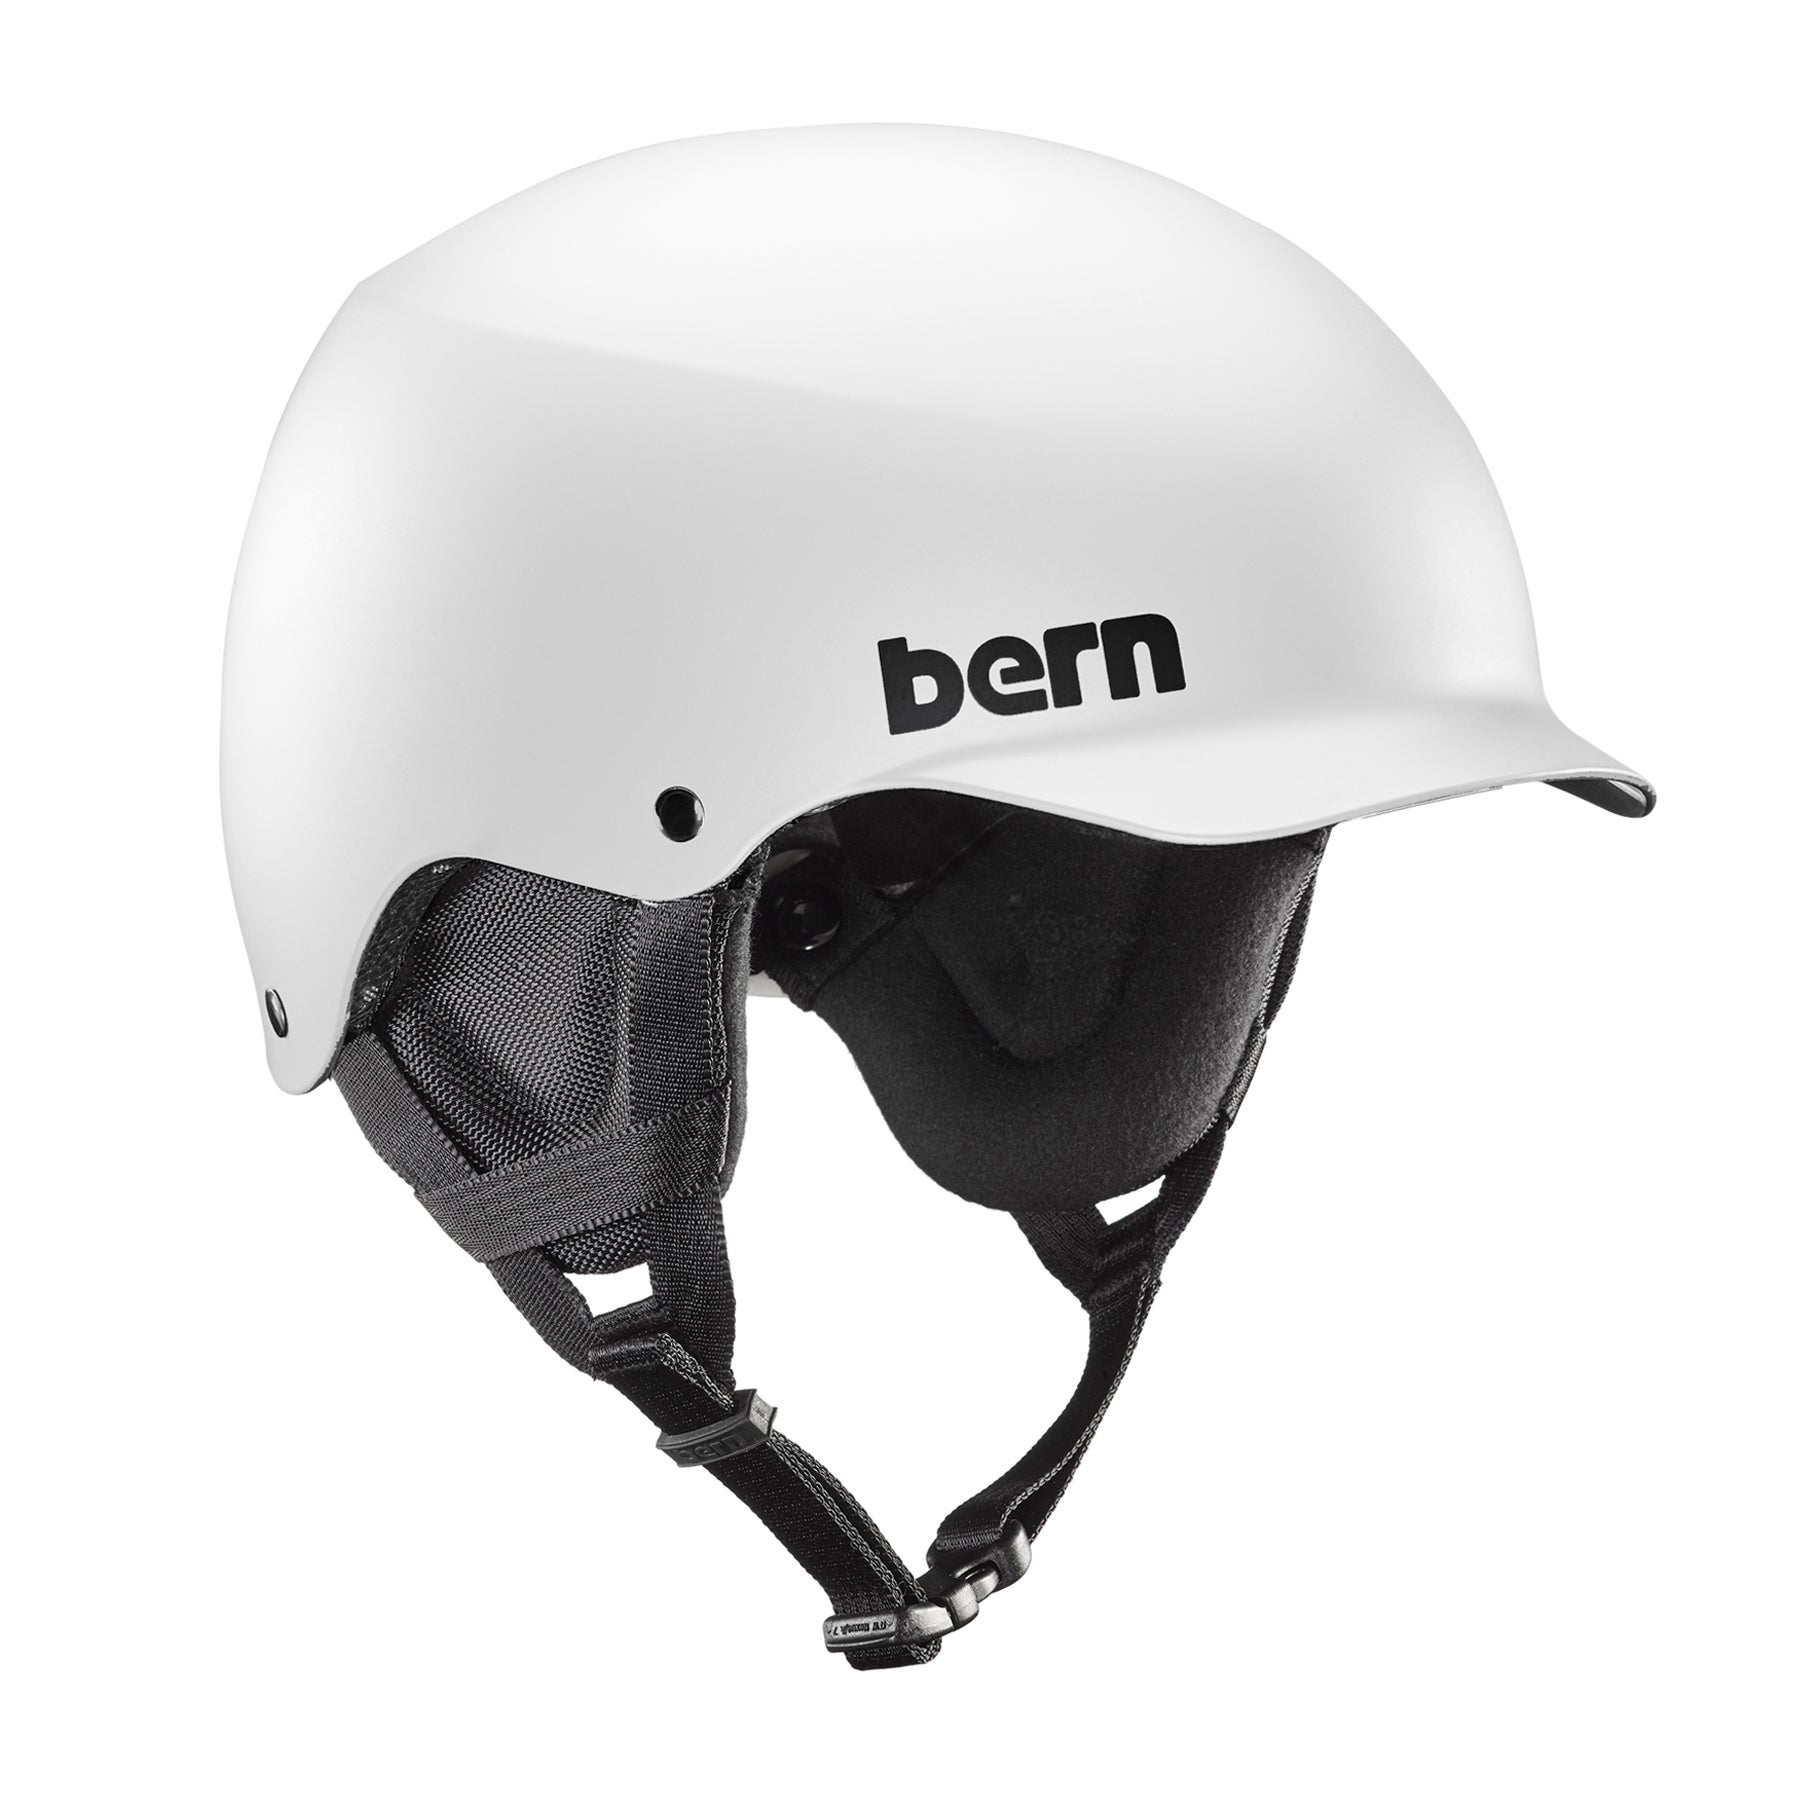 Bern Team Baker Ski Helmet - Gloss White ~ Black Liner